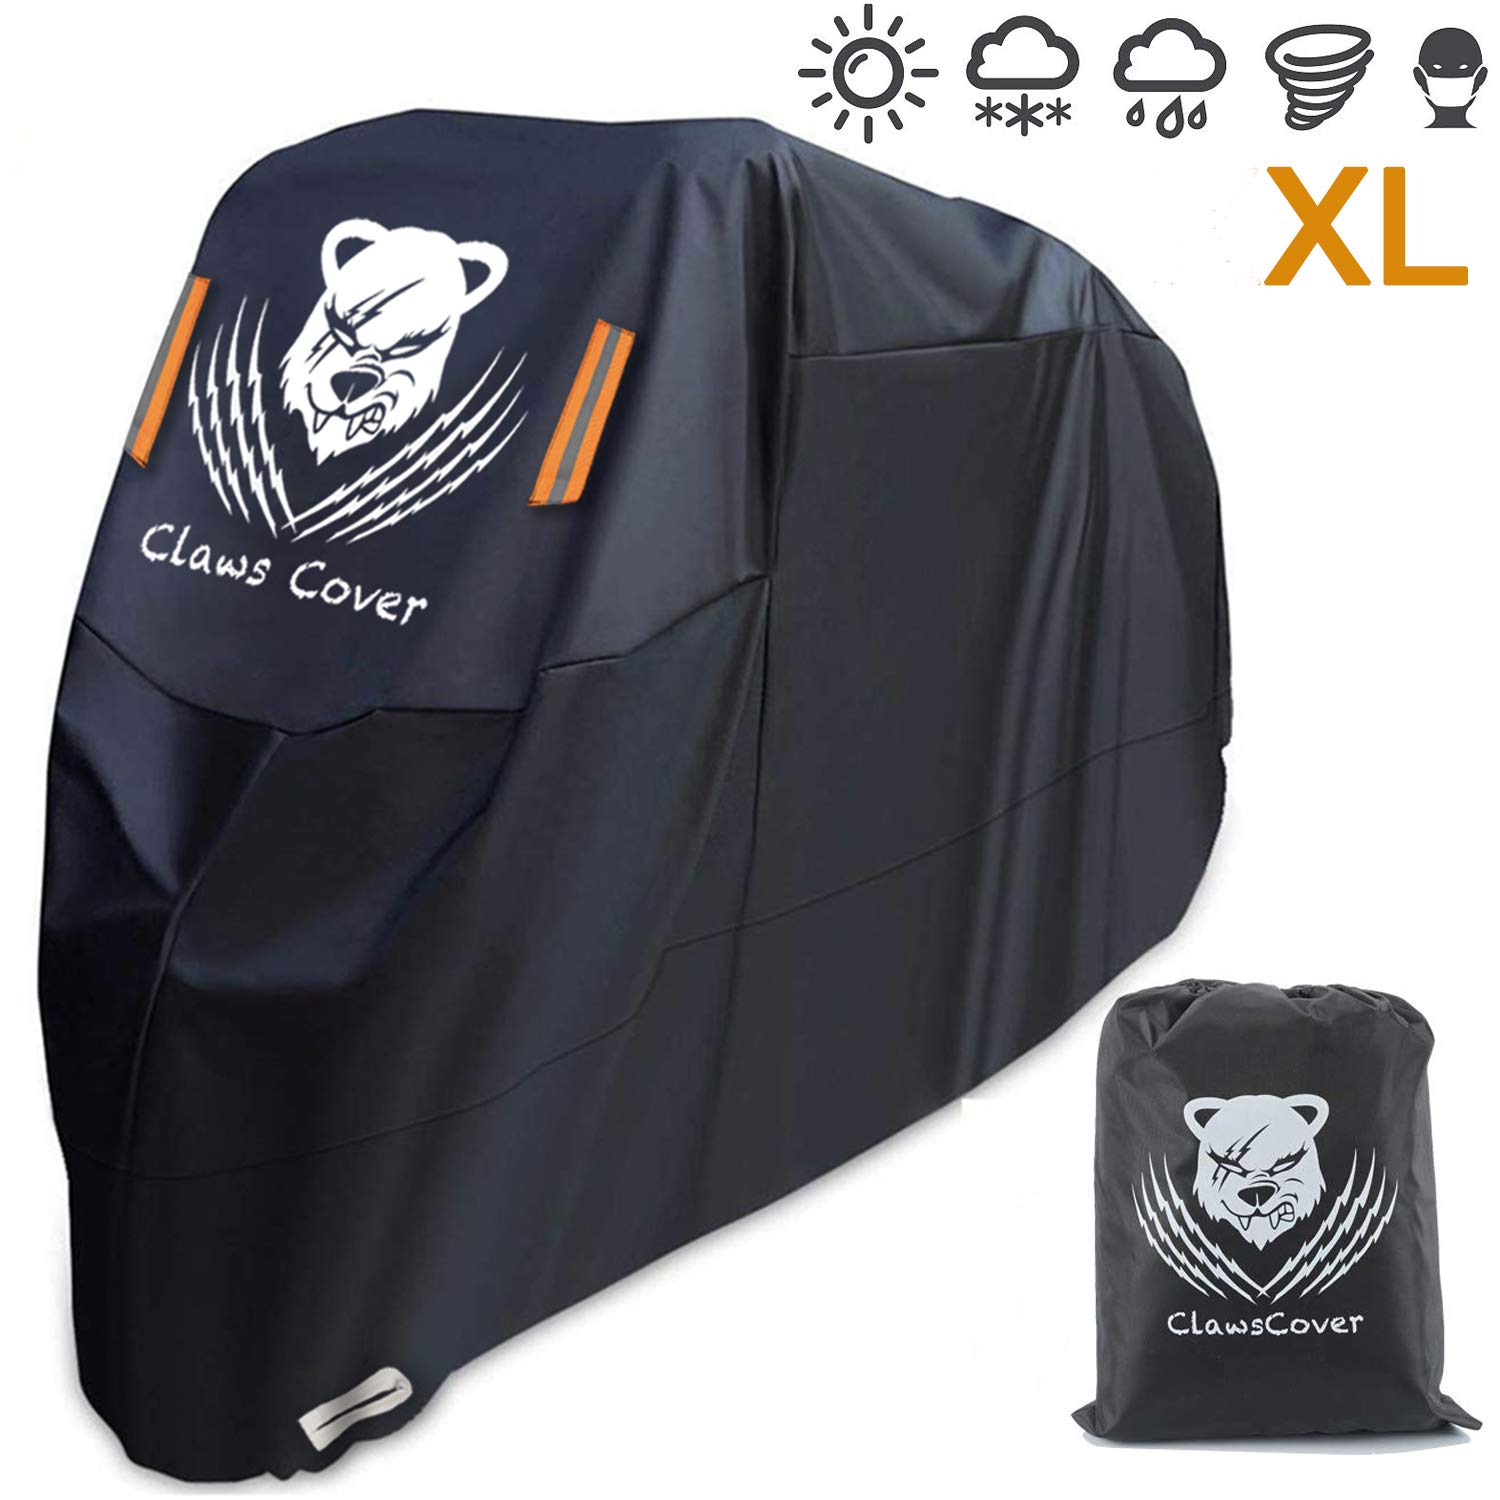 XL Motorcycles Covers Waterproof 96.5 Inches Heavy Duty All Weather 420D Oxford Durable Sun/Dust/Wind Proof 4 Season Scooter Sports Bike Cover Accessories Outdoor Protection with Lock Hole-ClawsCover by ClawsCover